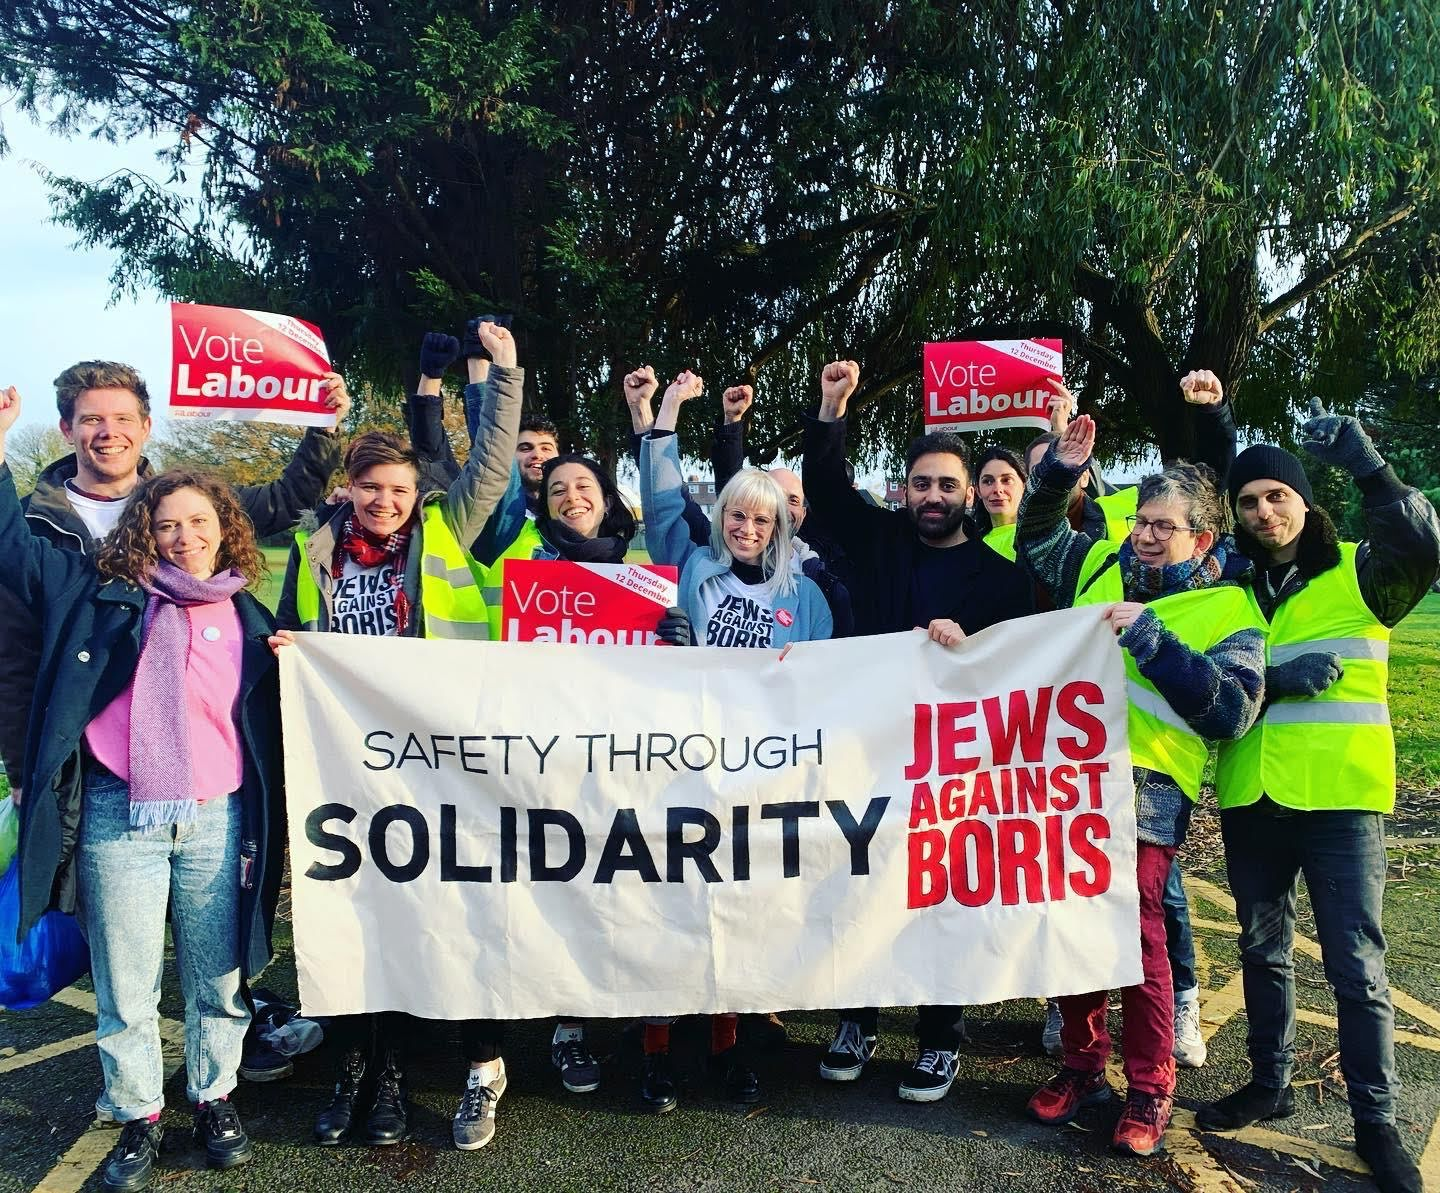 Members of Jews Against Boris, a grassroots campaign aiming to unseat incumbent U.K. Prime Minister Boris Johnson, in London, November 17, 2019. (Jews Against Boris)